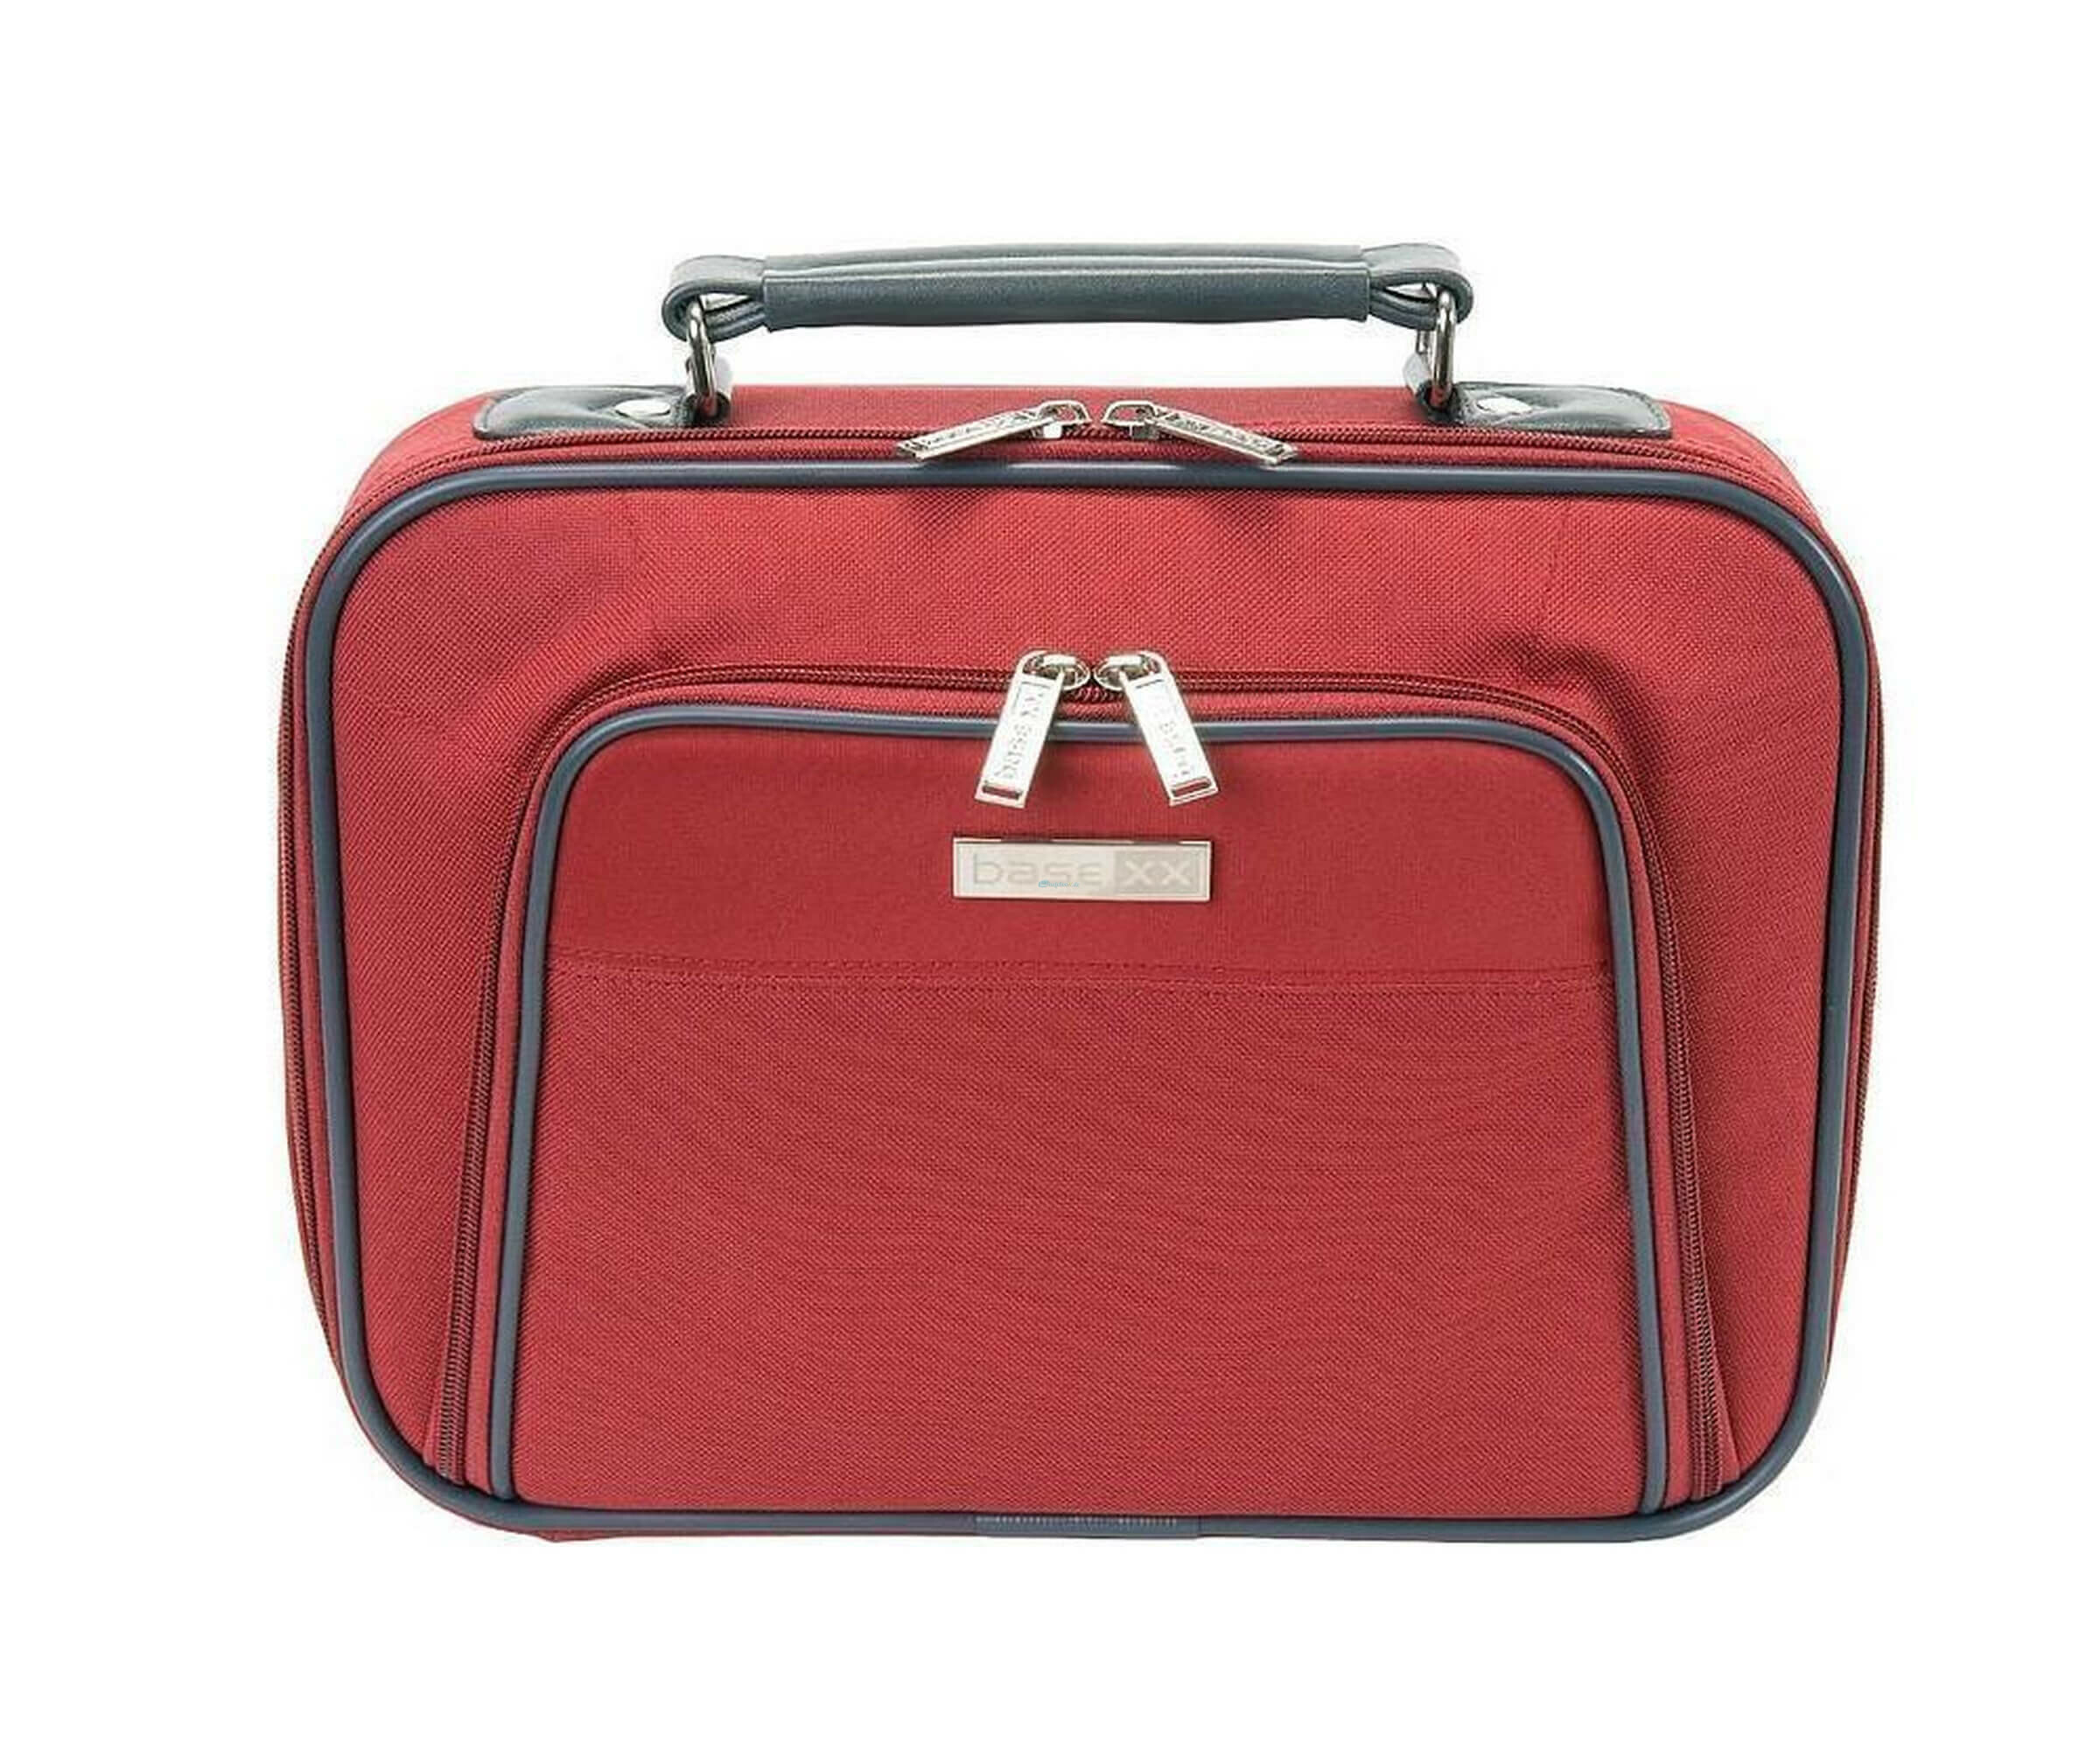 Dicota BaseXX / Mini NBC 11.6 - Tasche für Notebook rot - Notebookbag Red - N24098P